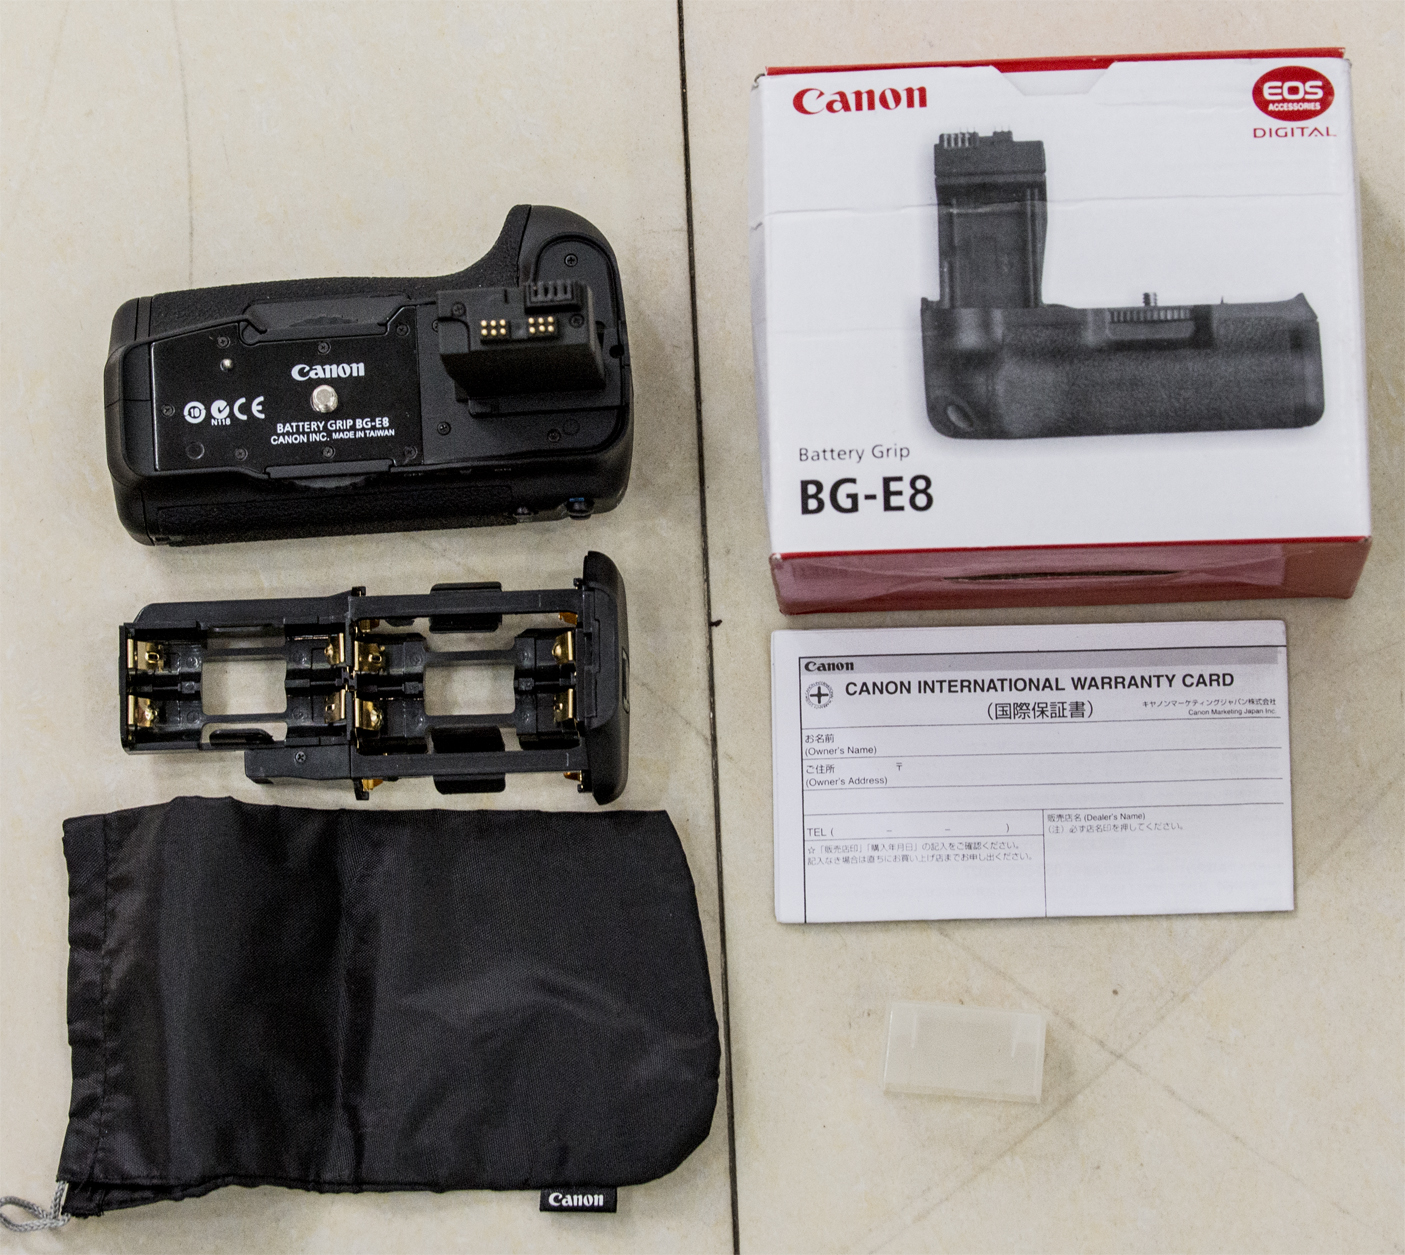 Battery Grip BG-E8 for Canon 550D, 600D, 650D, 700D